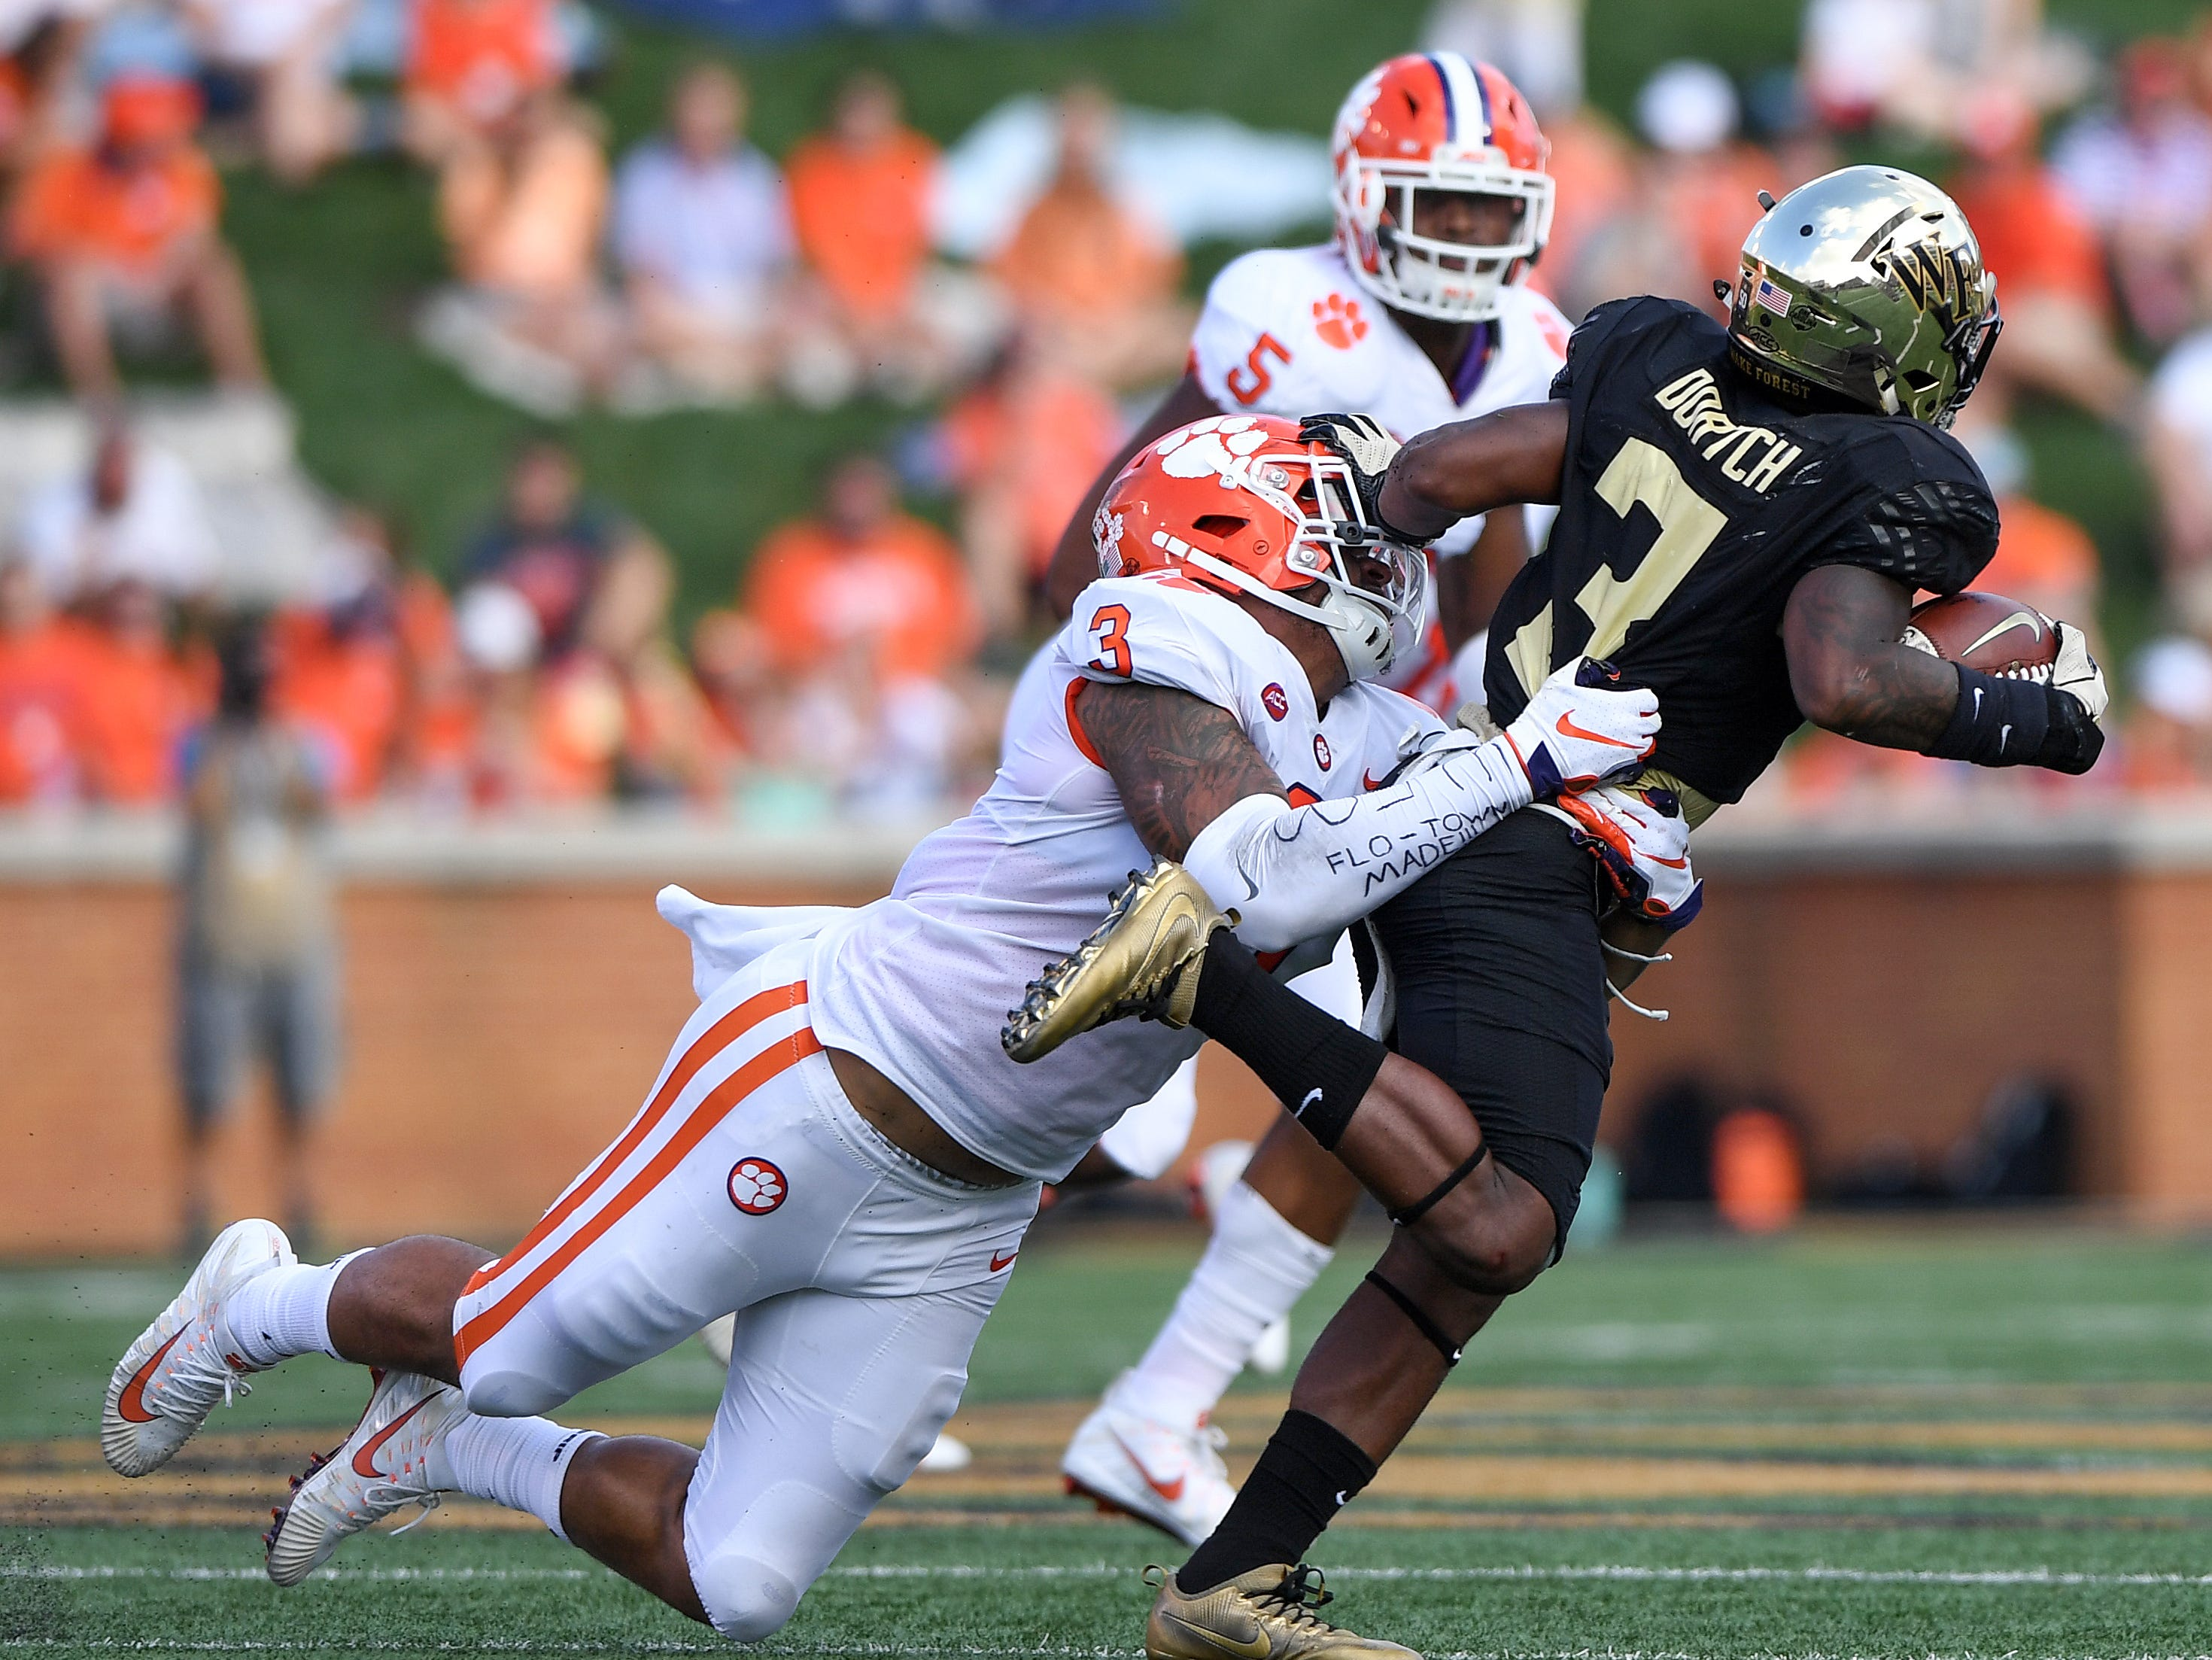 Clemson defensive lineman Xavier Thomas (3) brings down Wake Forest wide receiver Greg Dortch (3) during the 2nd quarter at BB&T Field in Winston Salem, N.C. Saturday, October 6, 2018.